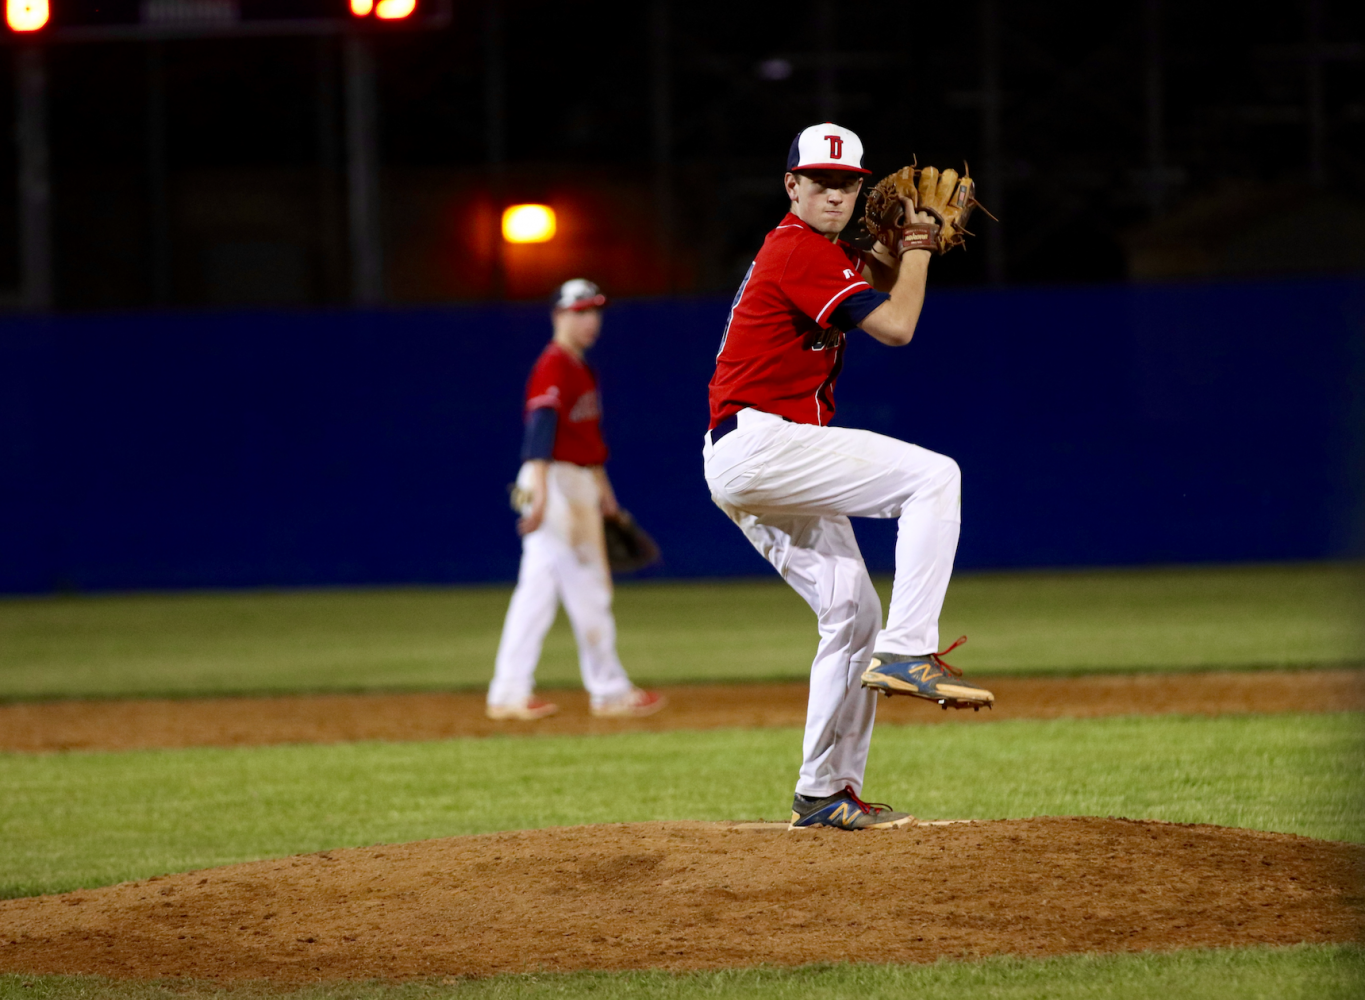 Relief pitcher Todd Hartman ends the game with a strong performance of 0 runs allowed for 2 innings. With strong efforts and determination by the players, Jefferson managed to defeat Falls Church 13-6.